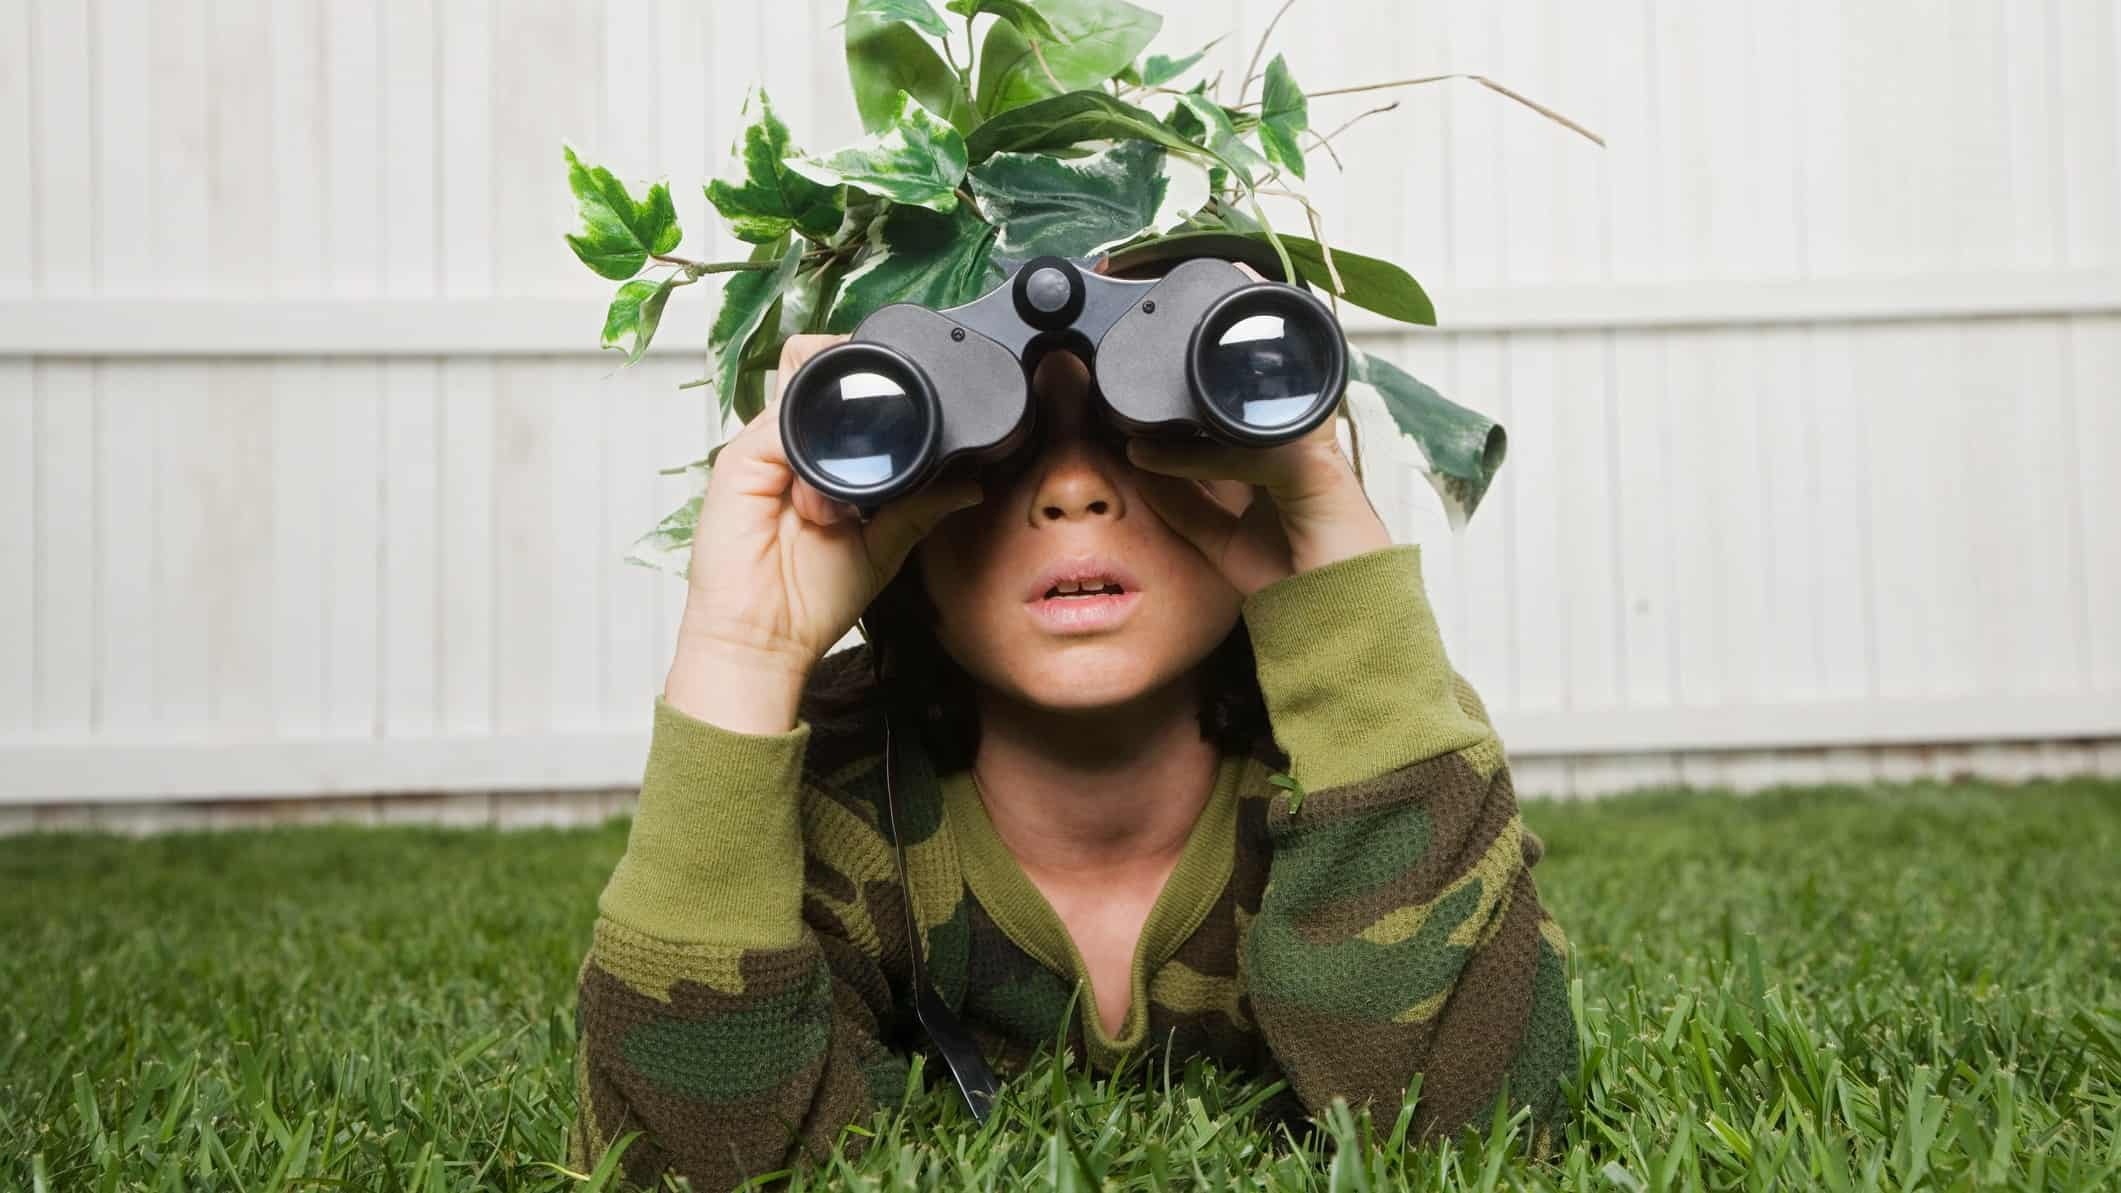 a child dressed in army fatigues lies on the ground in his backyard wearing leaves and branches on his head as camouflage and peering through a pair of binoculars in a soldier pose.